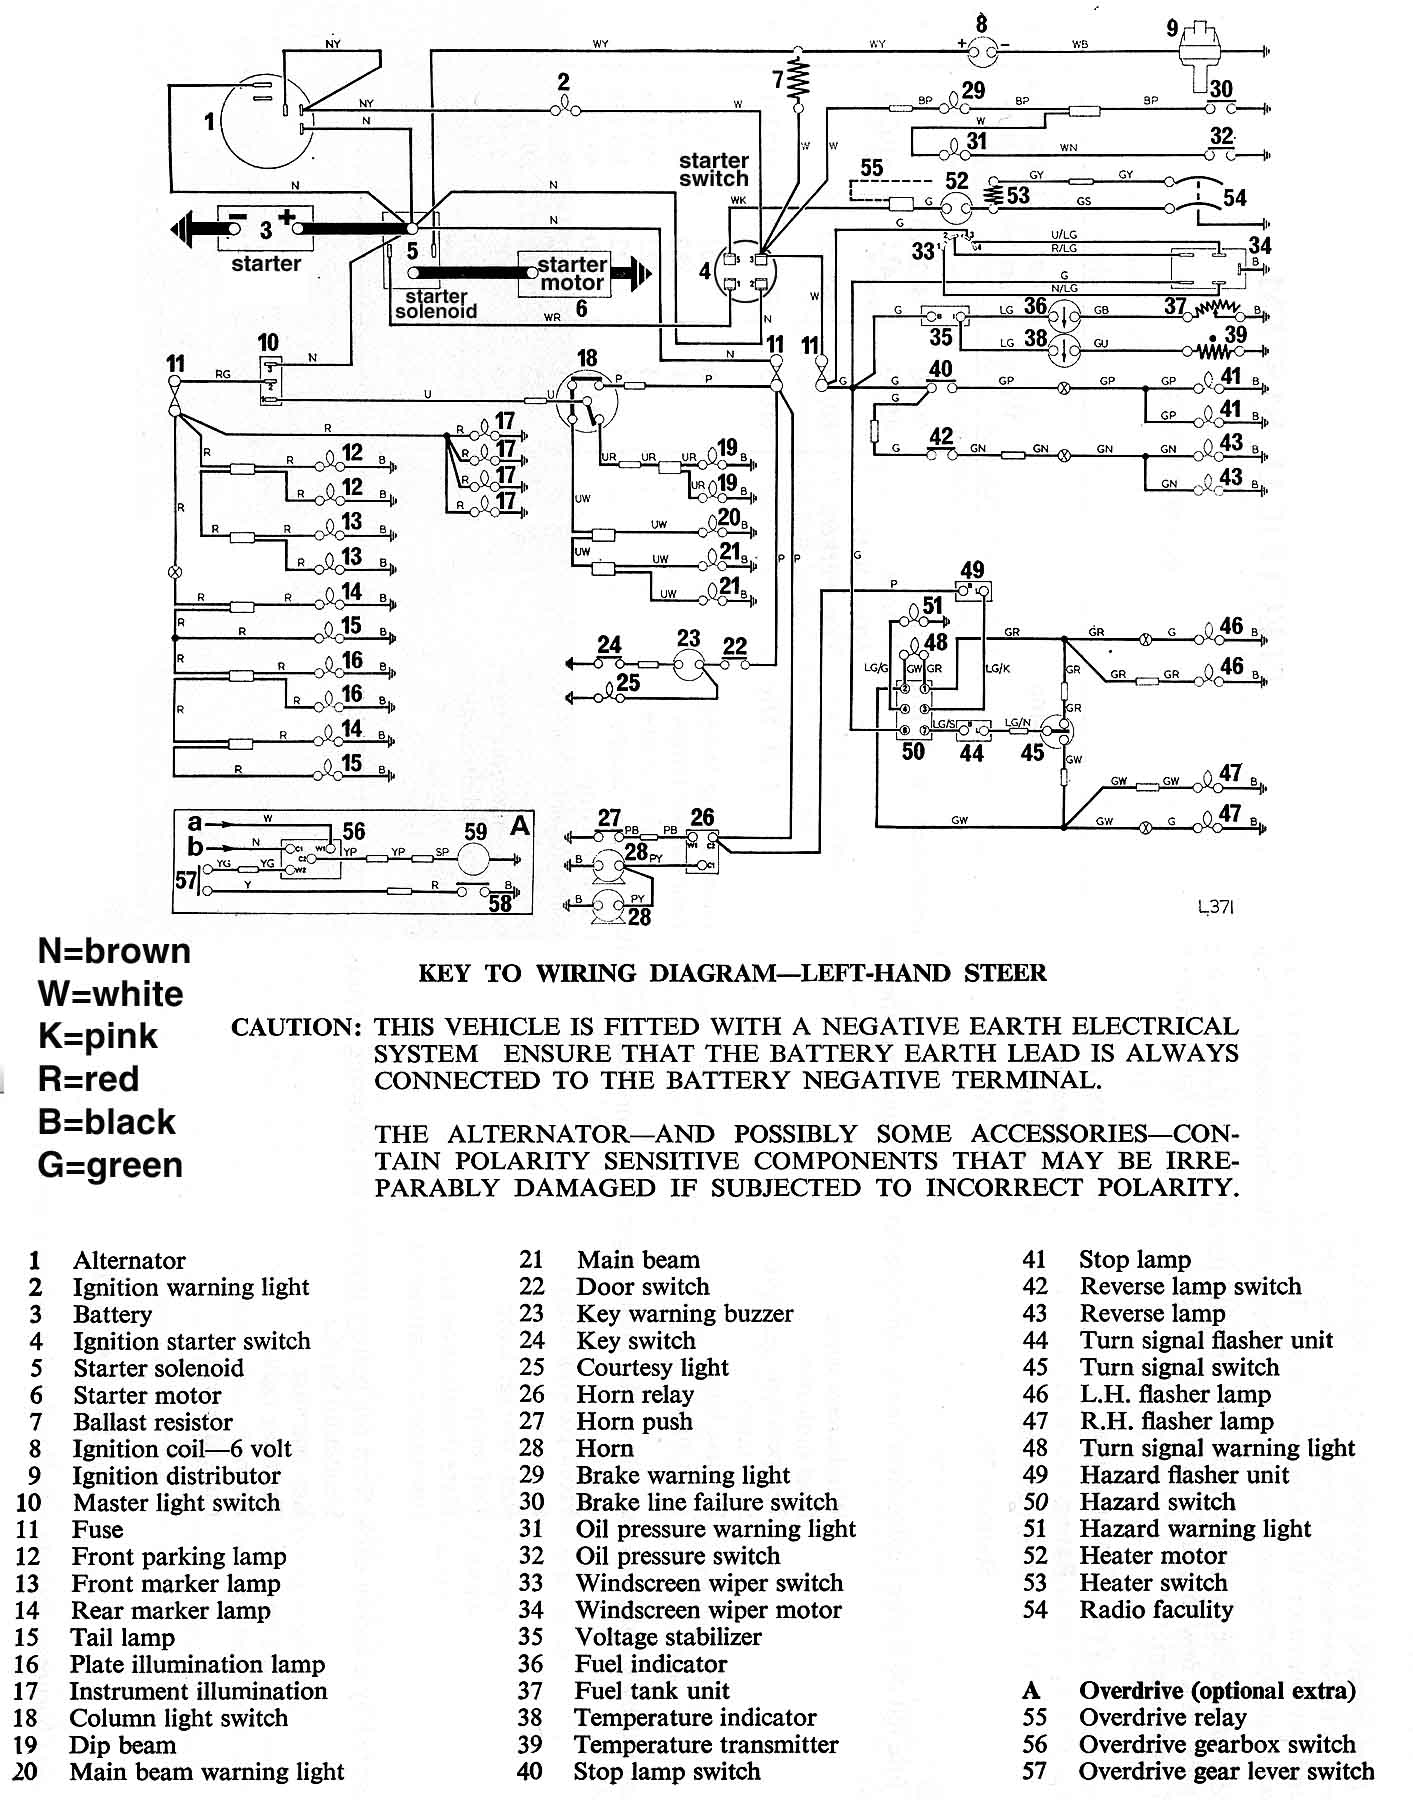 MKIVwire wiring schematics and diagrams triumph spitfire, gt6, herald  at edmiracle.co